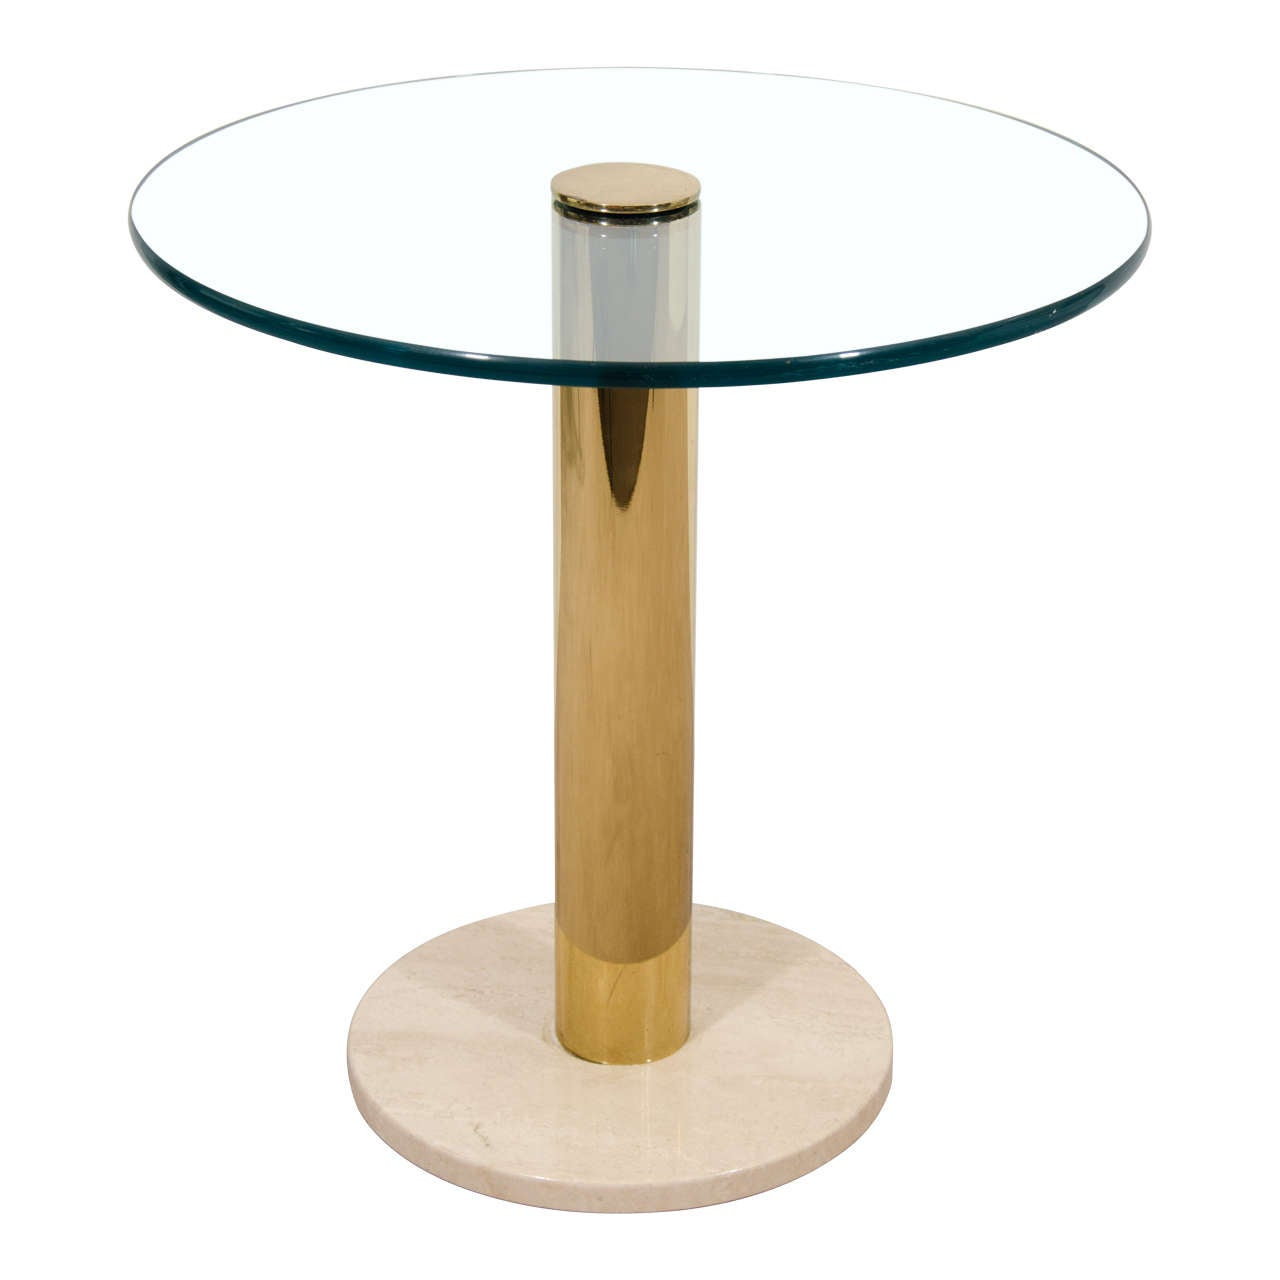 Modern Italian Brass, Glass and Marble Side Table by Pace, ca. 1970s